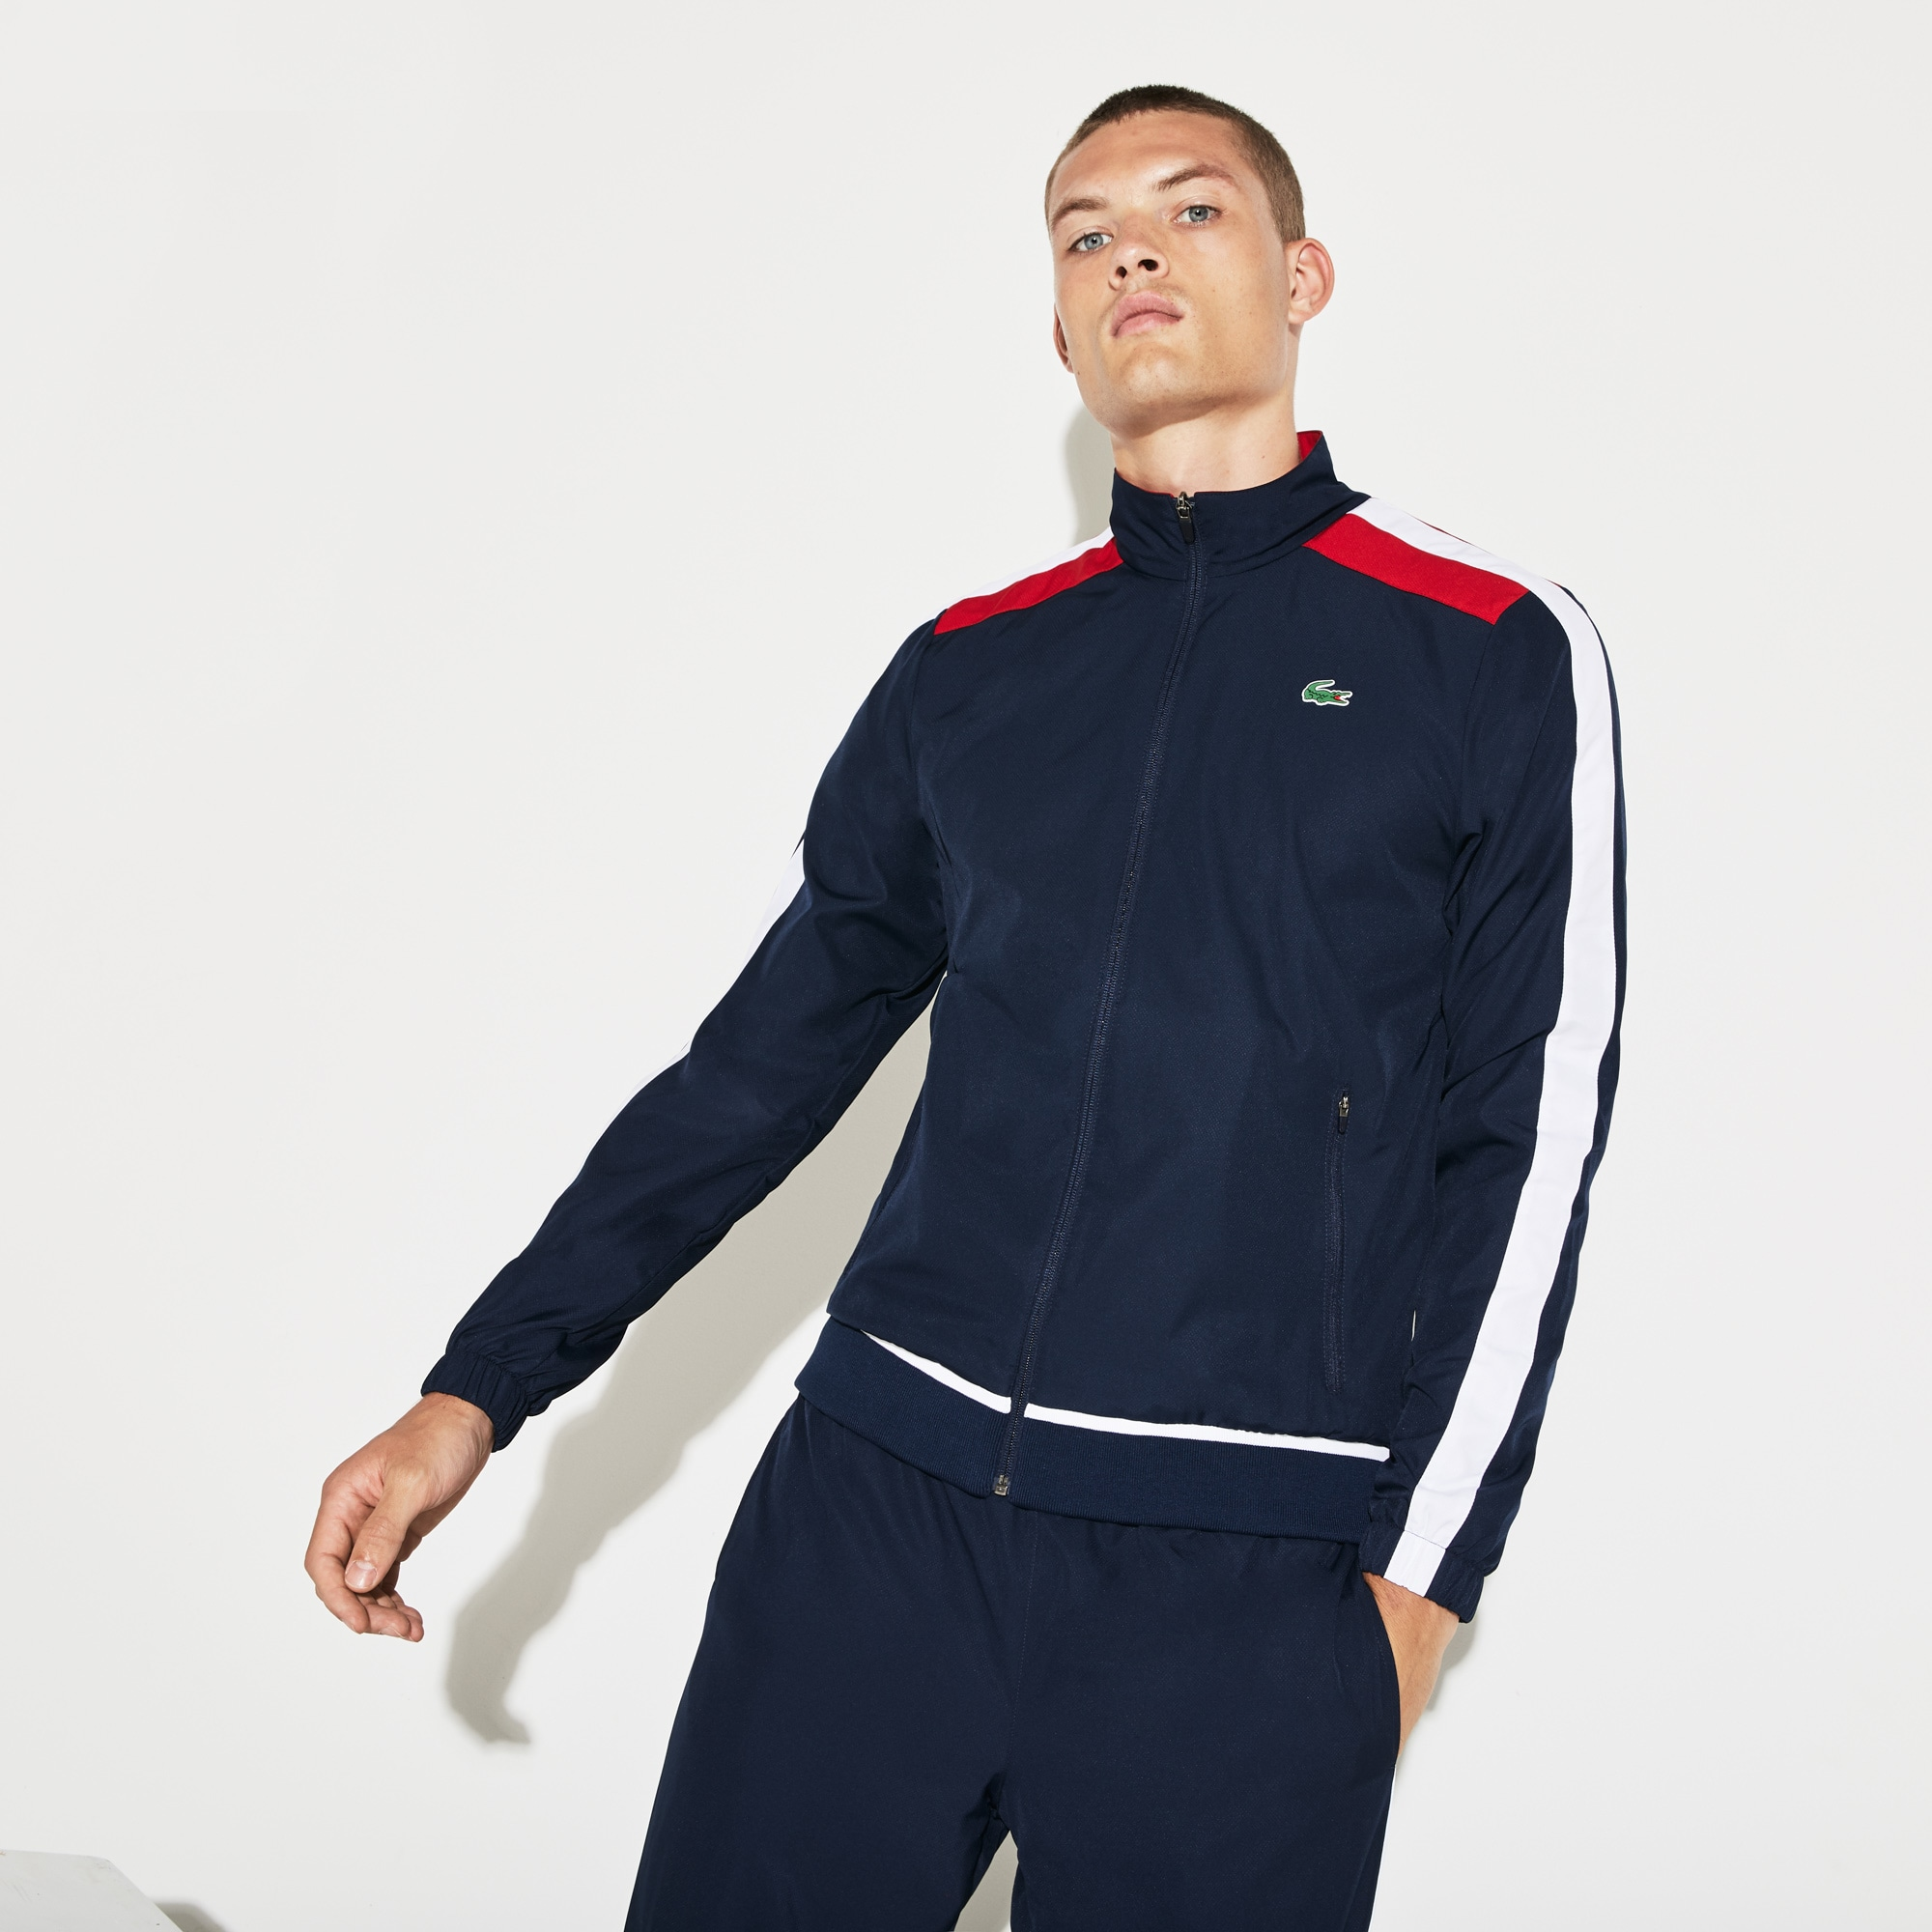 Men's SPORT Colored Bands Taffeta Tennis Tracksuit